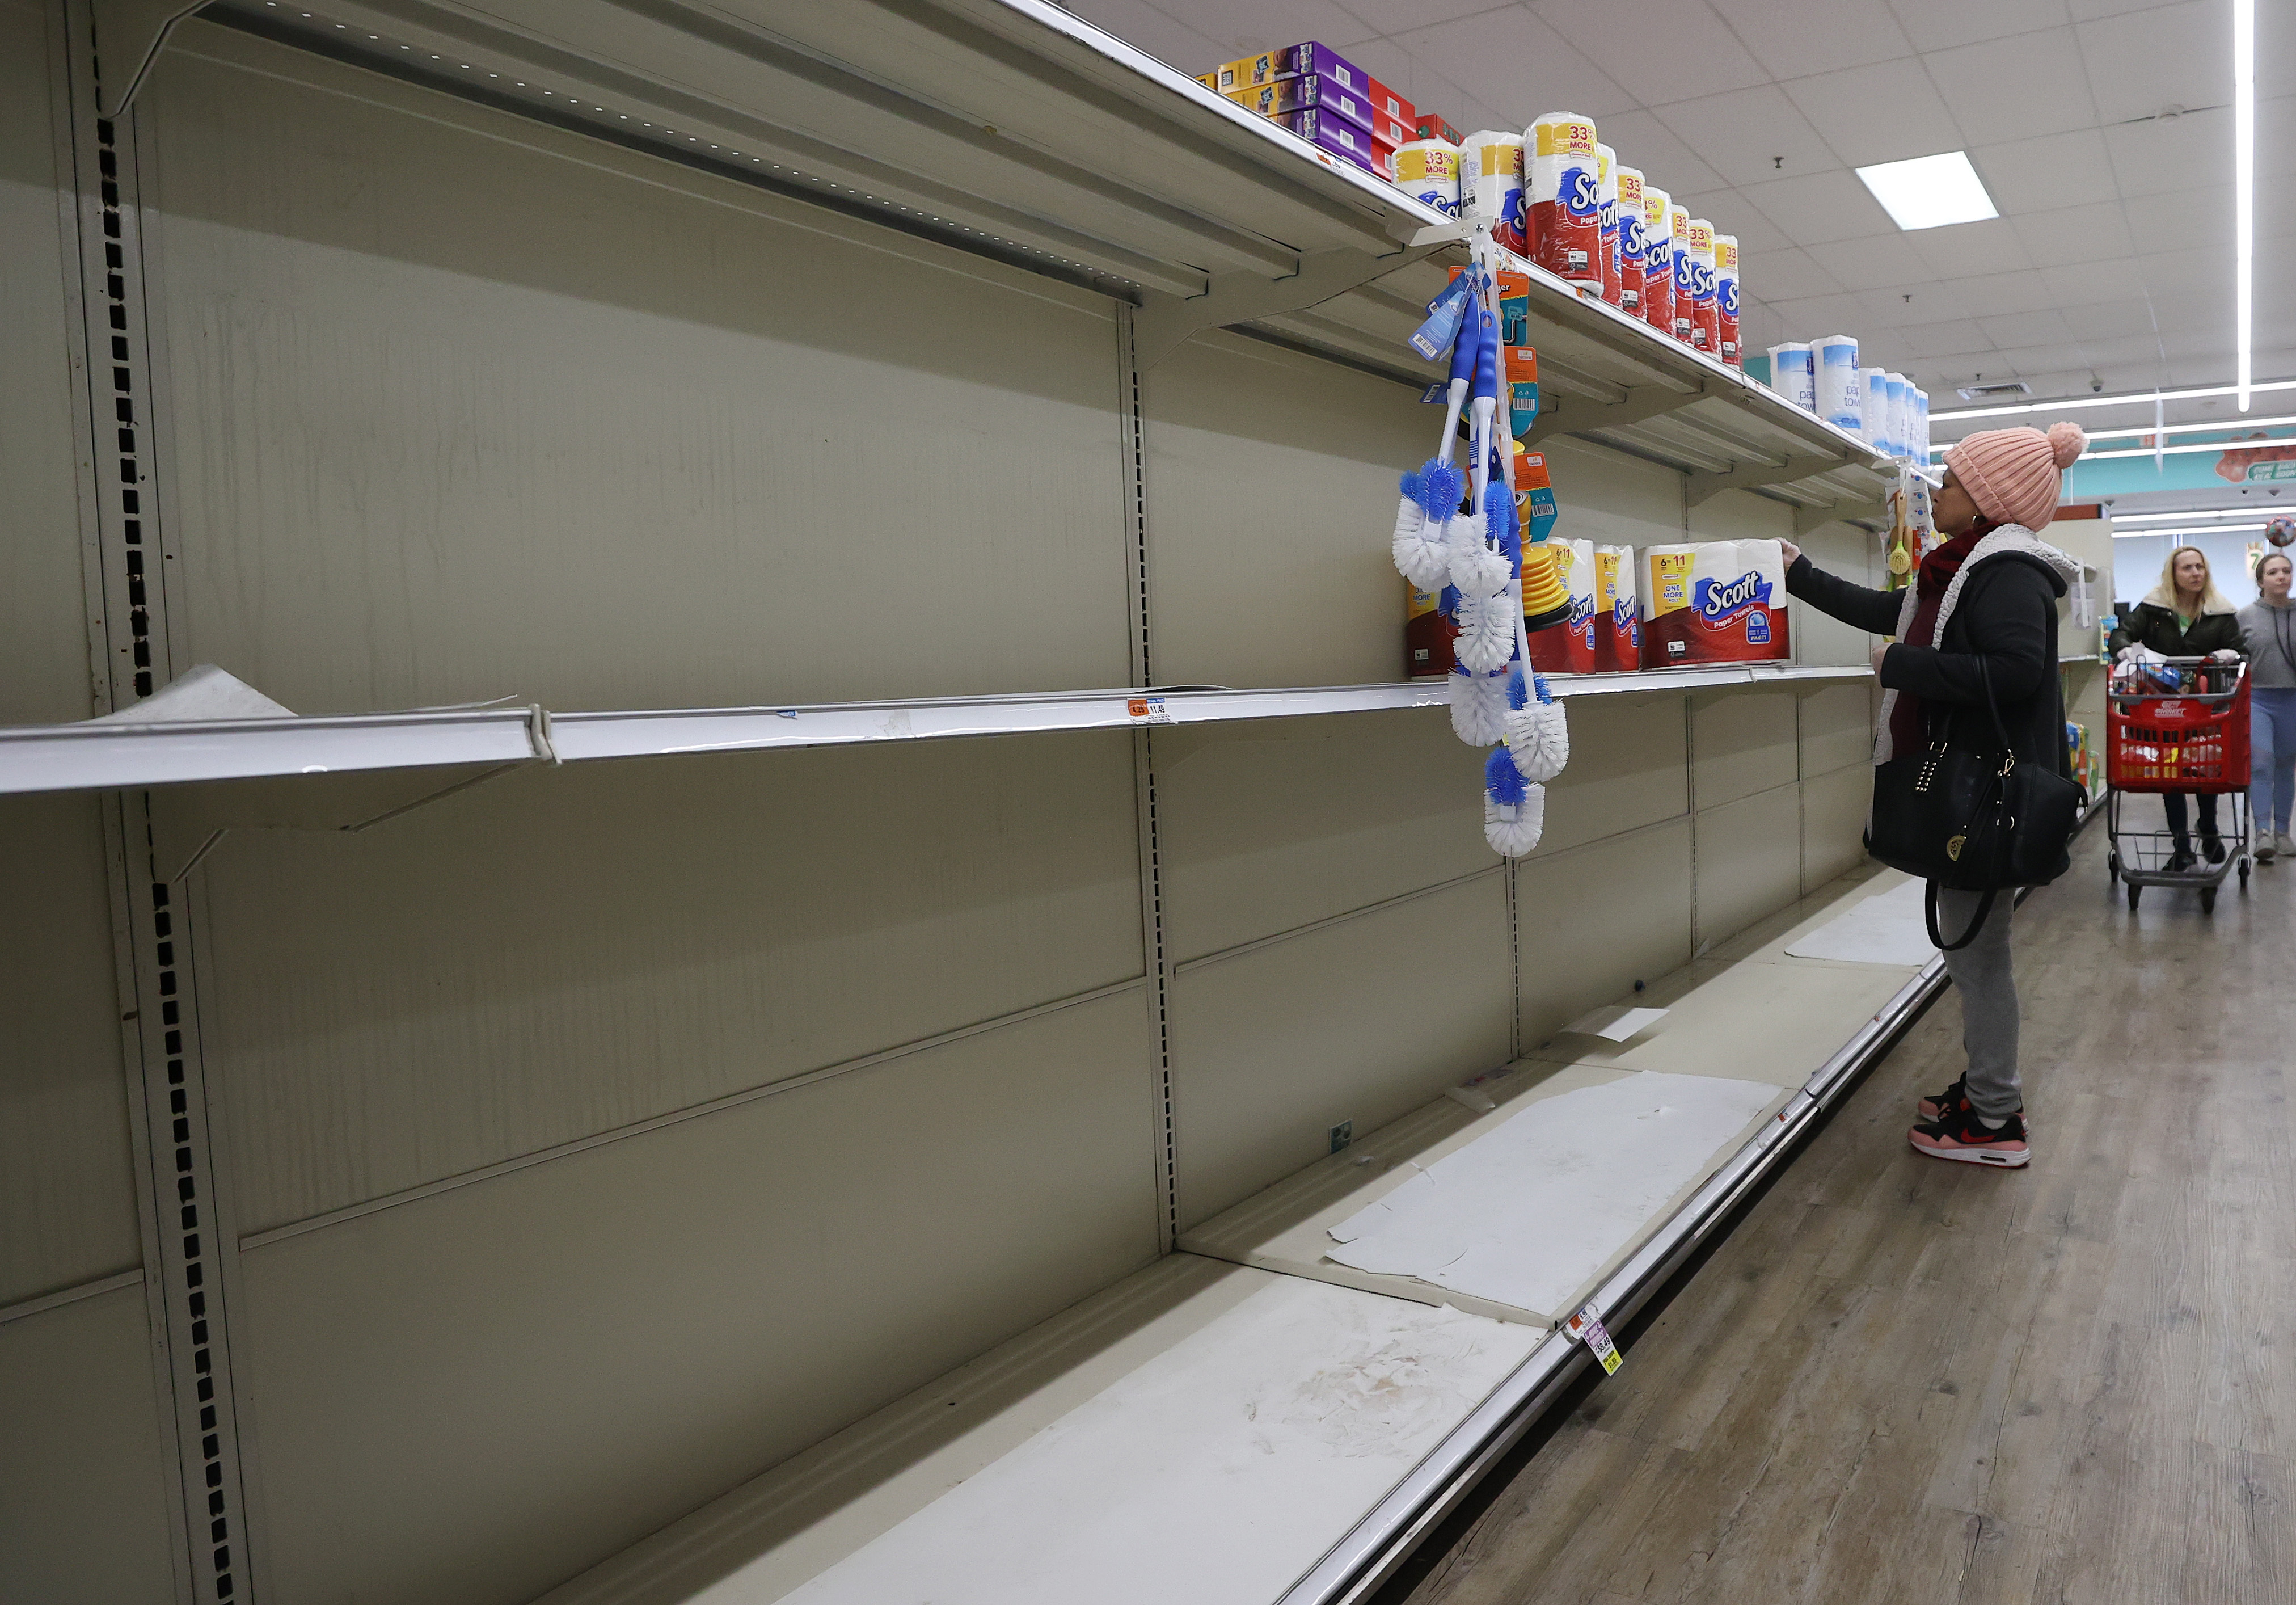 Empty shelves on March 17, 2020 in a store in Merrick, New York.